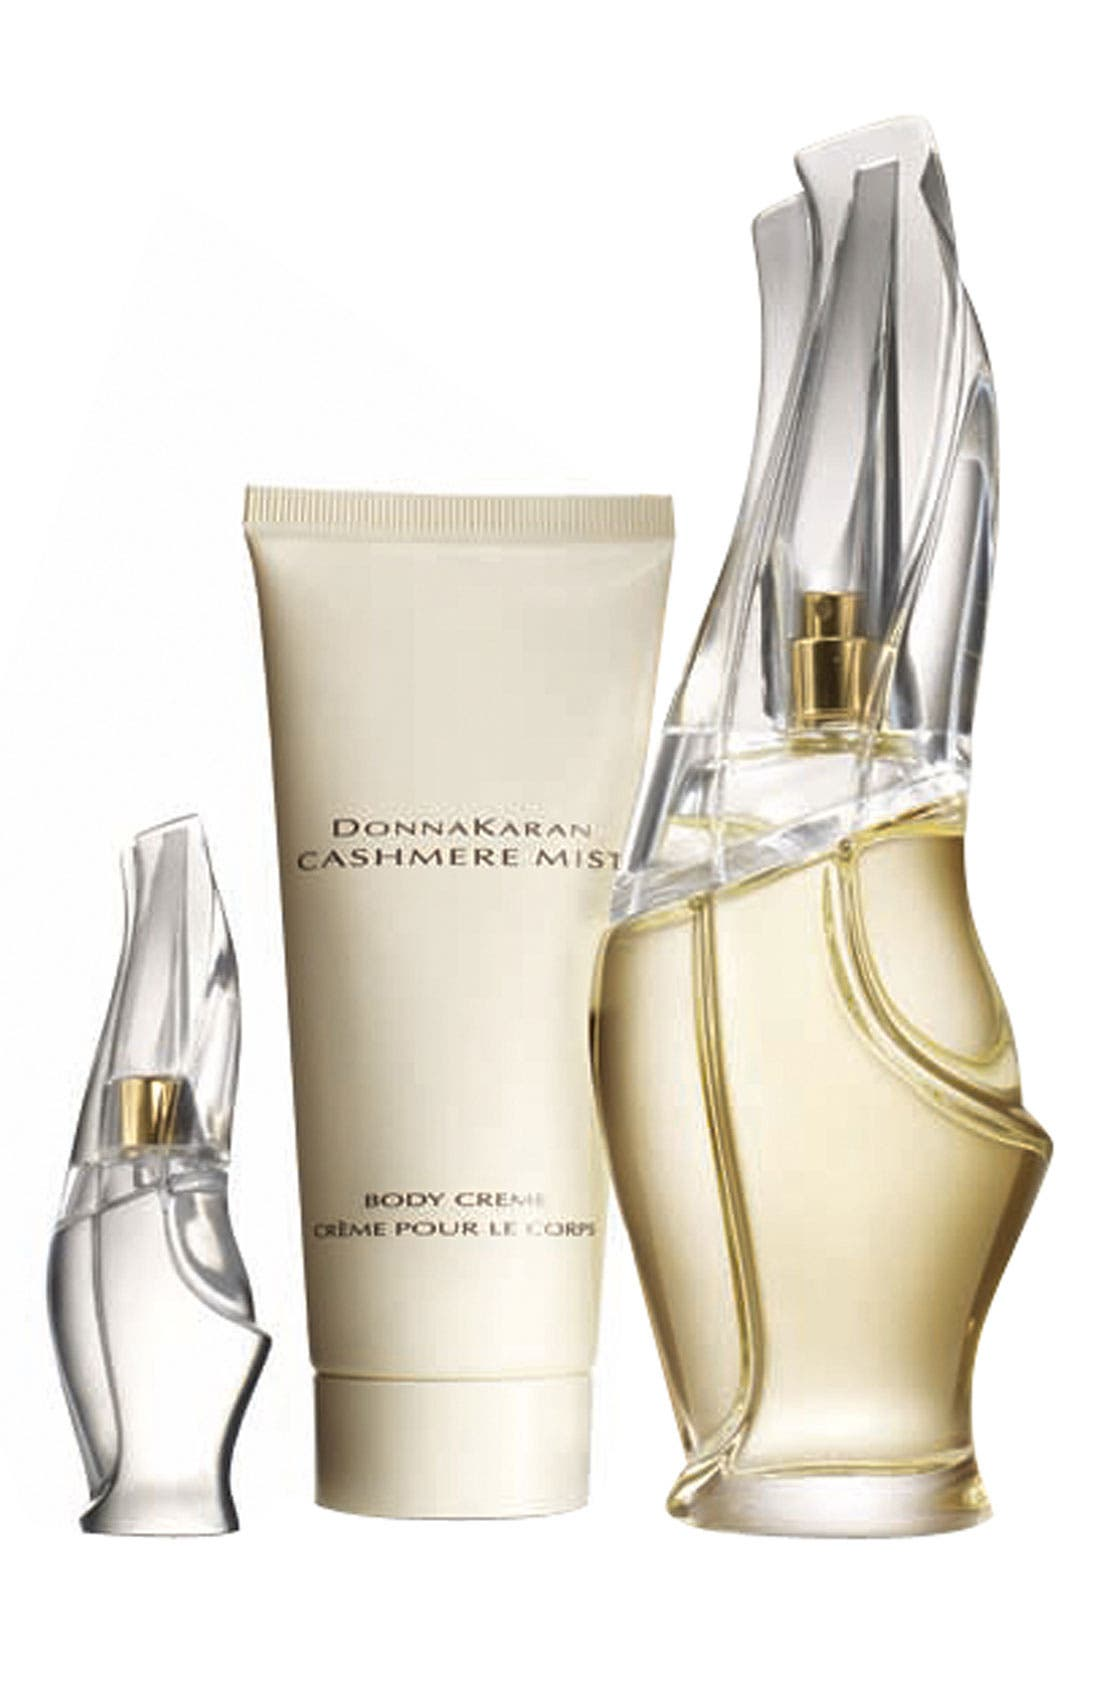 DONNA KARAN NEW YORK Donna Karan 'Cashmere Mist' Gift Set, Main, color, 000